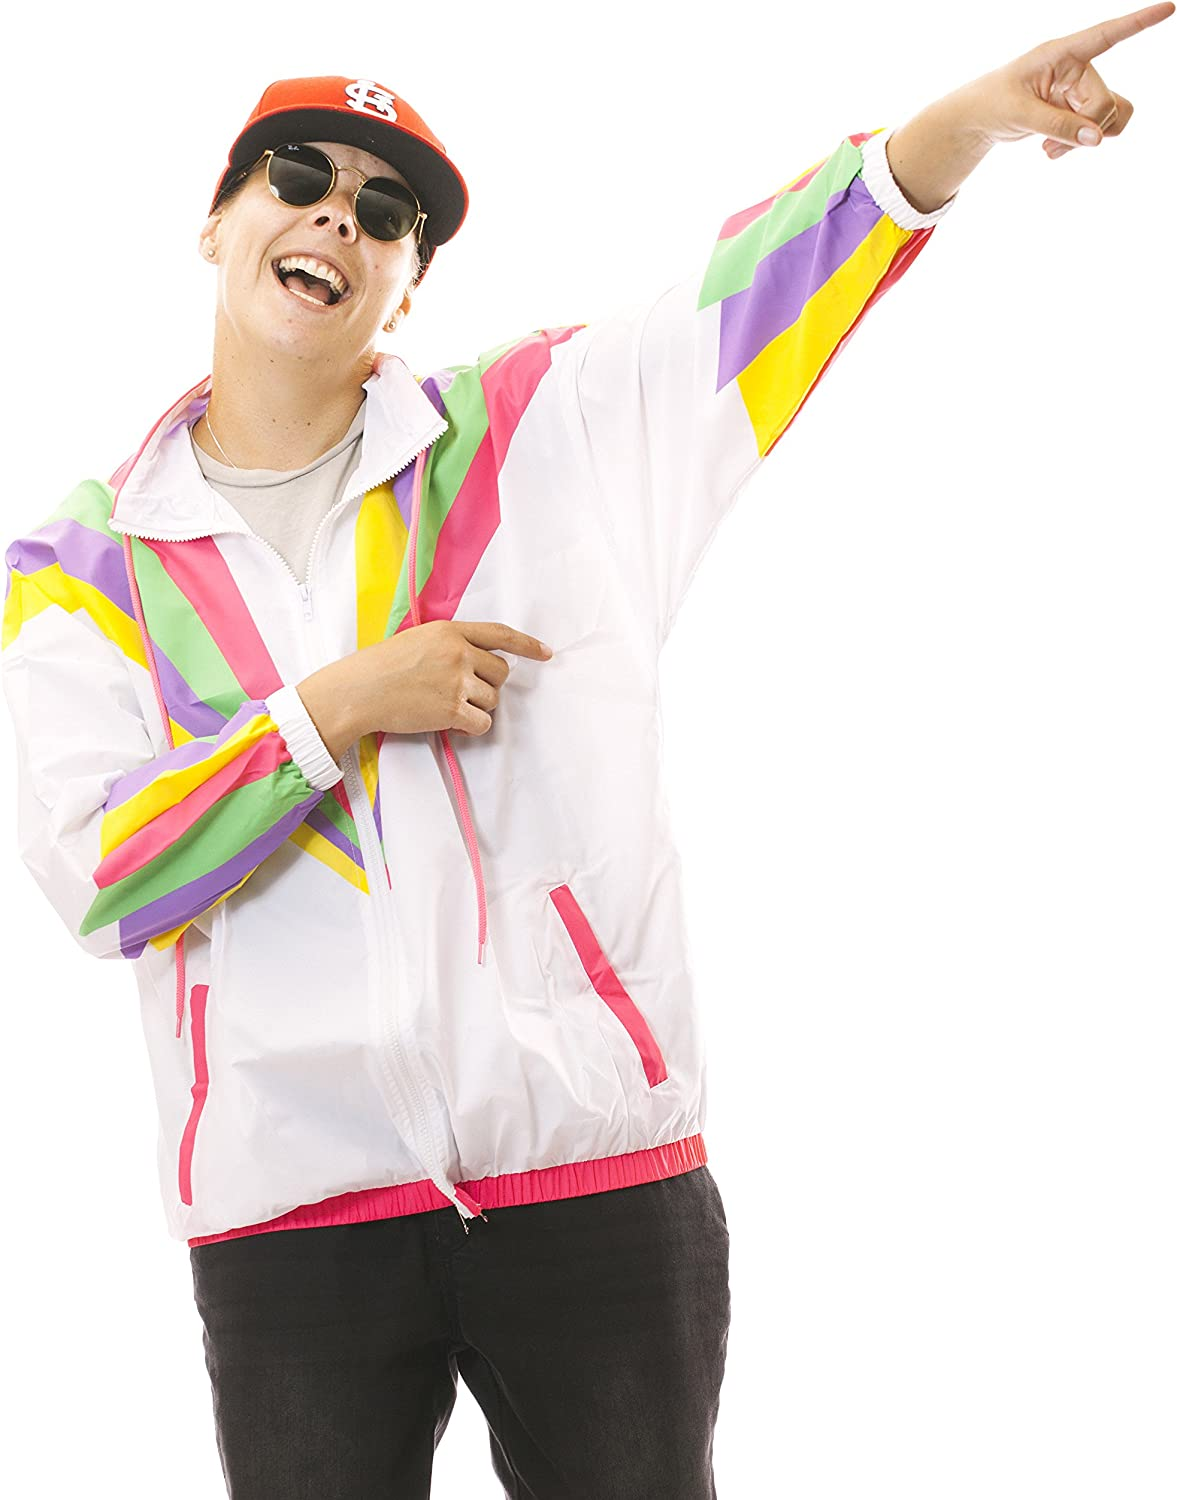 90s Outfits for Guys | Trendy, Party, Cool, Casaul Funny Guy Mugs Rad 80s & 90s Retro Neon Windbreaker  AT vintagedancer.com